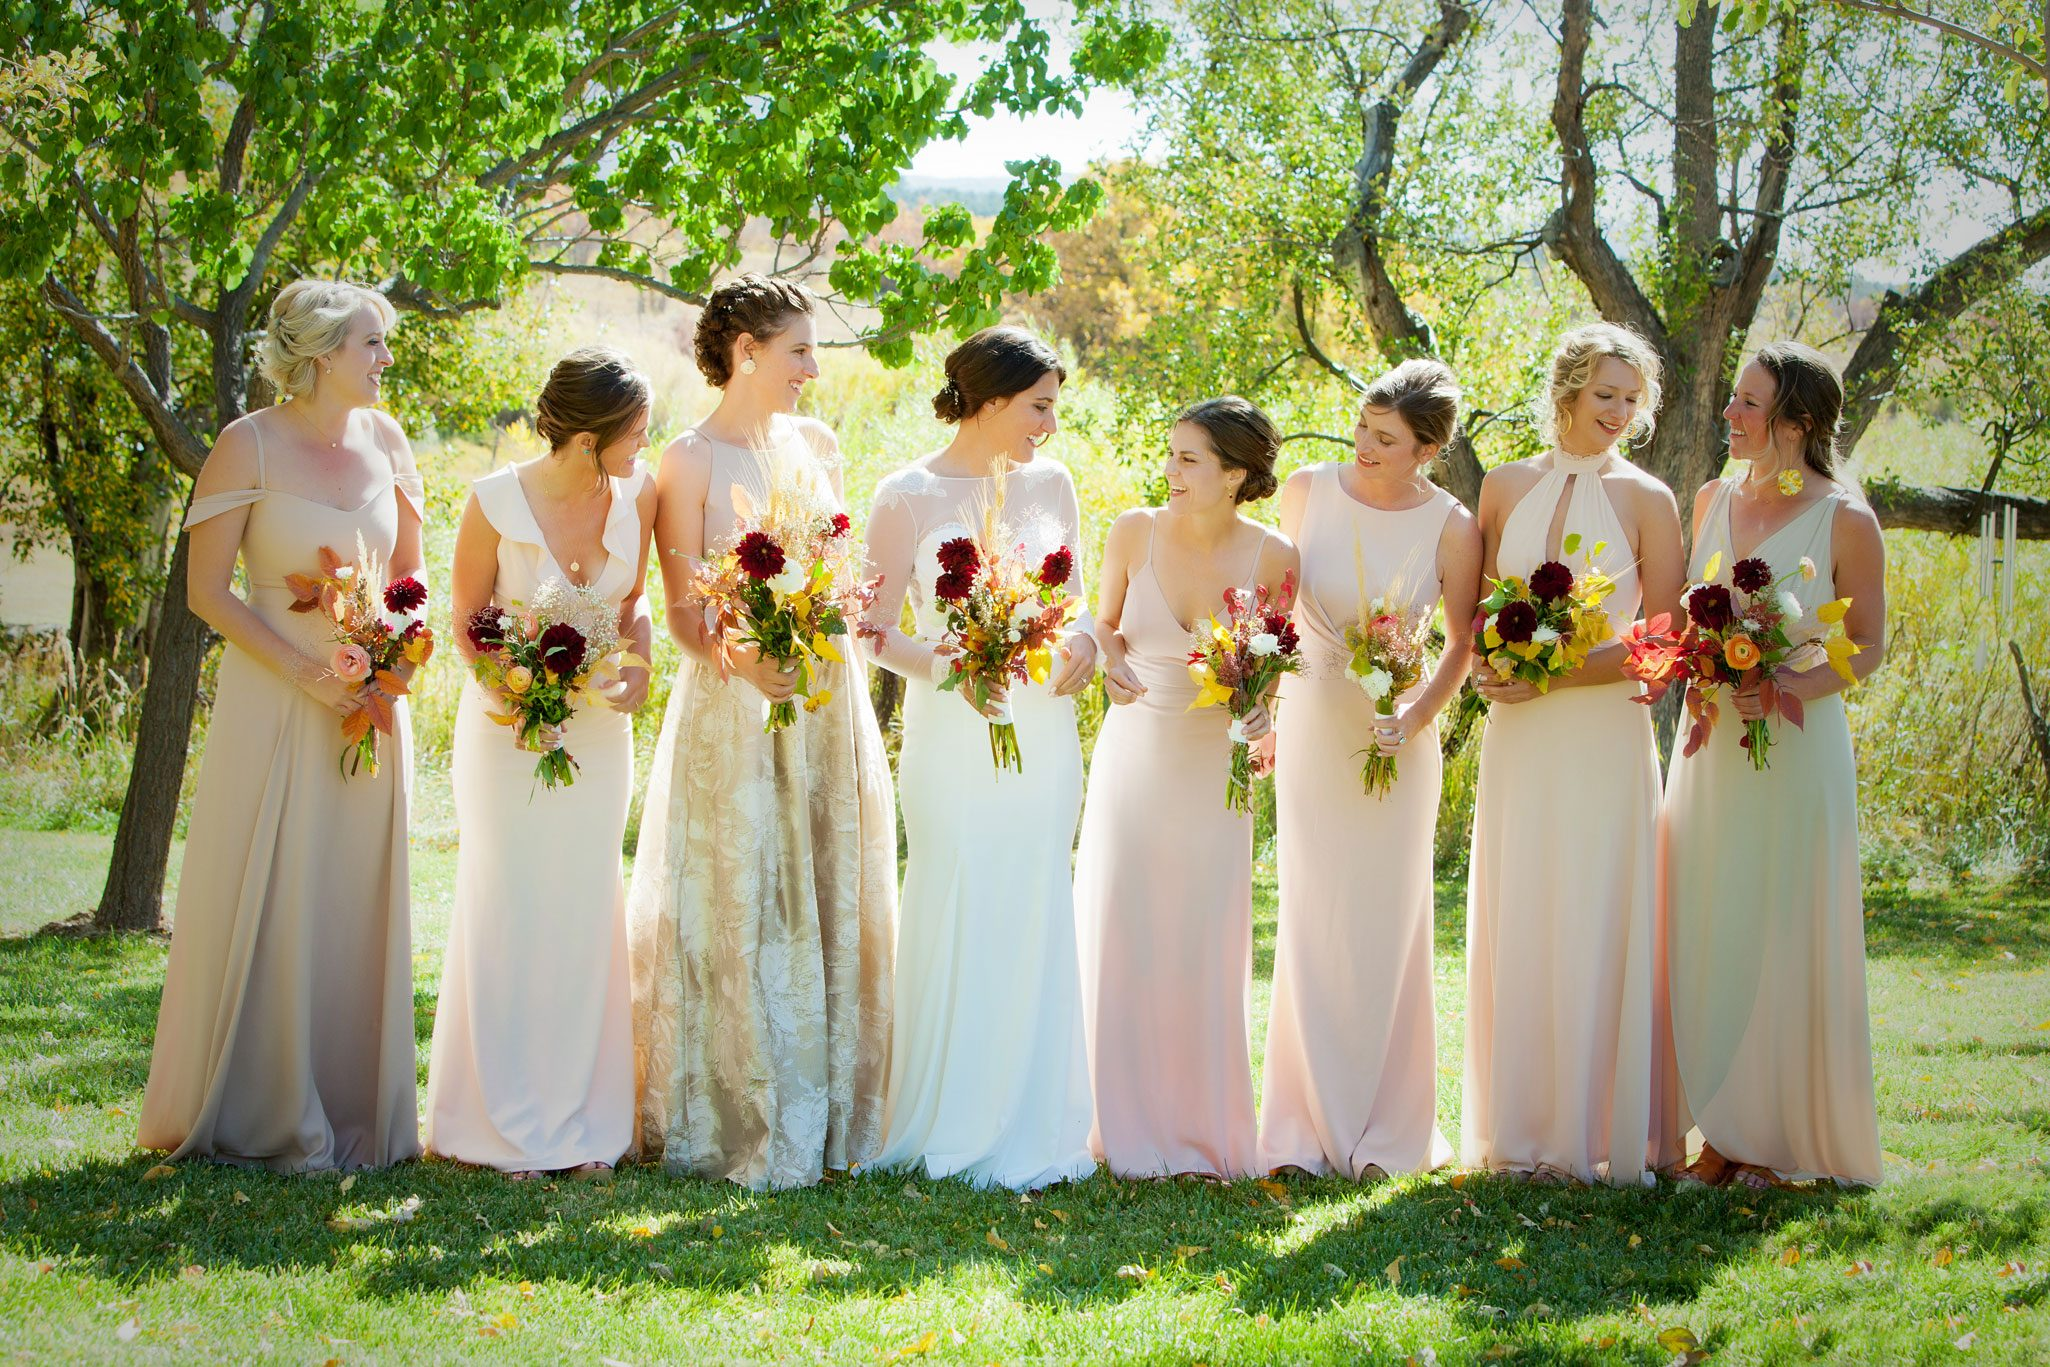 Bridesmaids | Outdoor Autumn Wedding in Mancos, Colorado